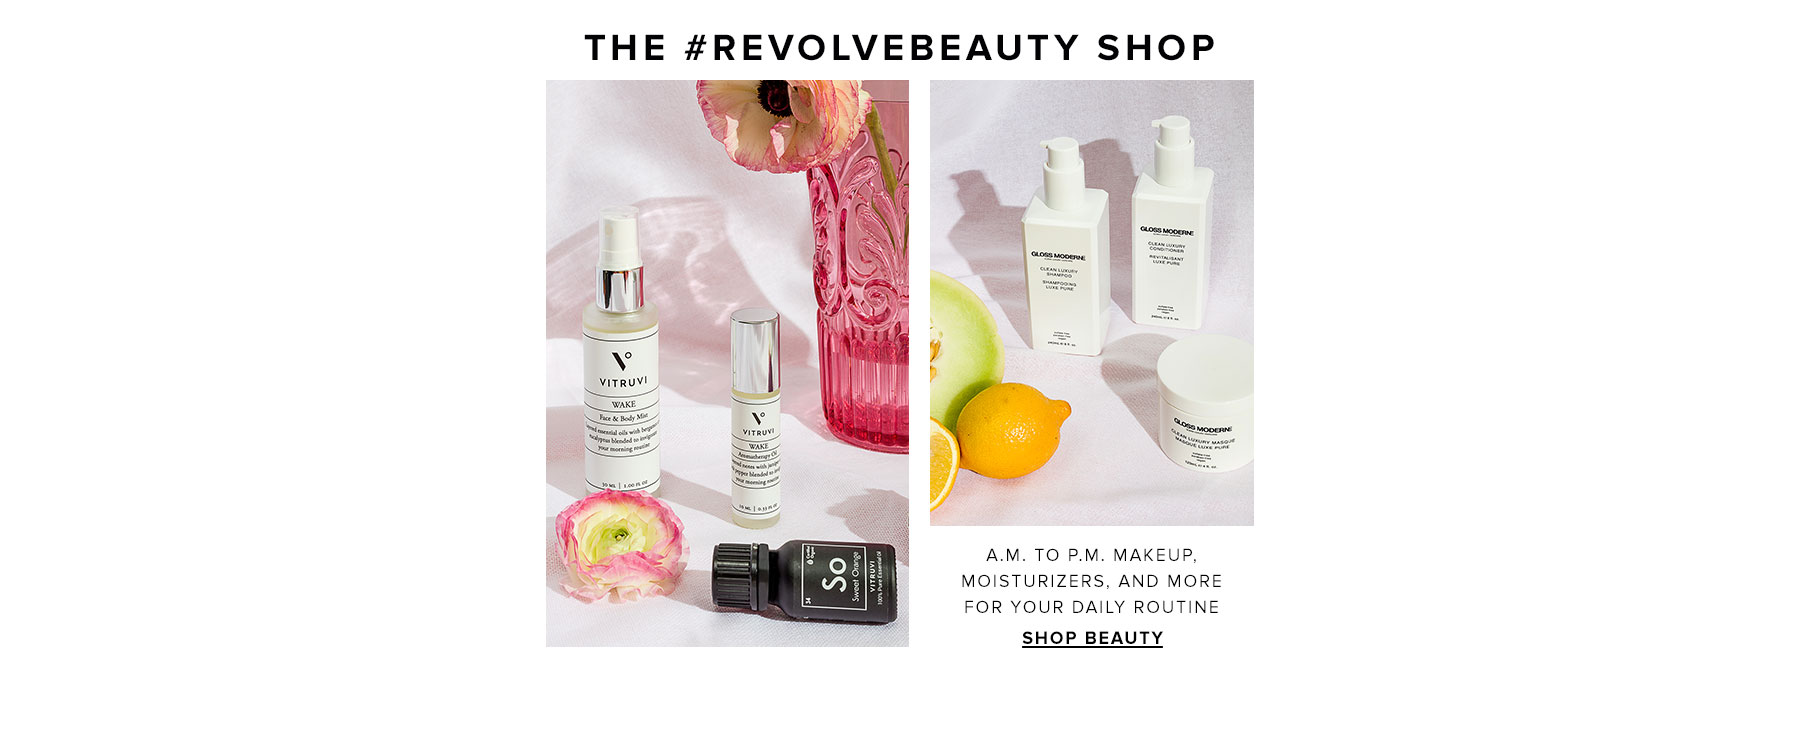 The REVOLVEbeauty Shop. A.M. to PM. makeup, moisturizers, and more for your daily routine. Shop Beauty.